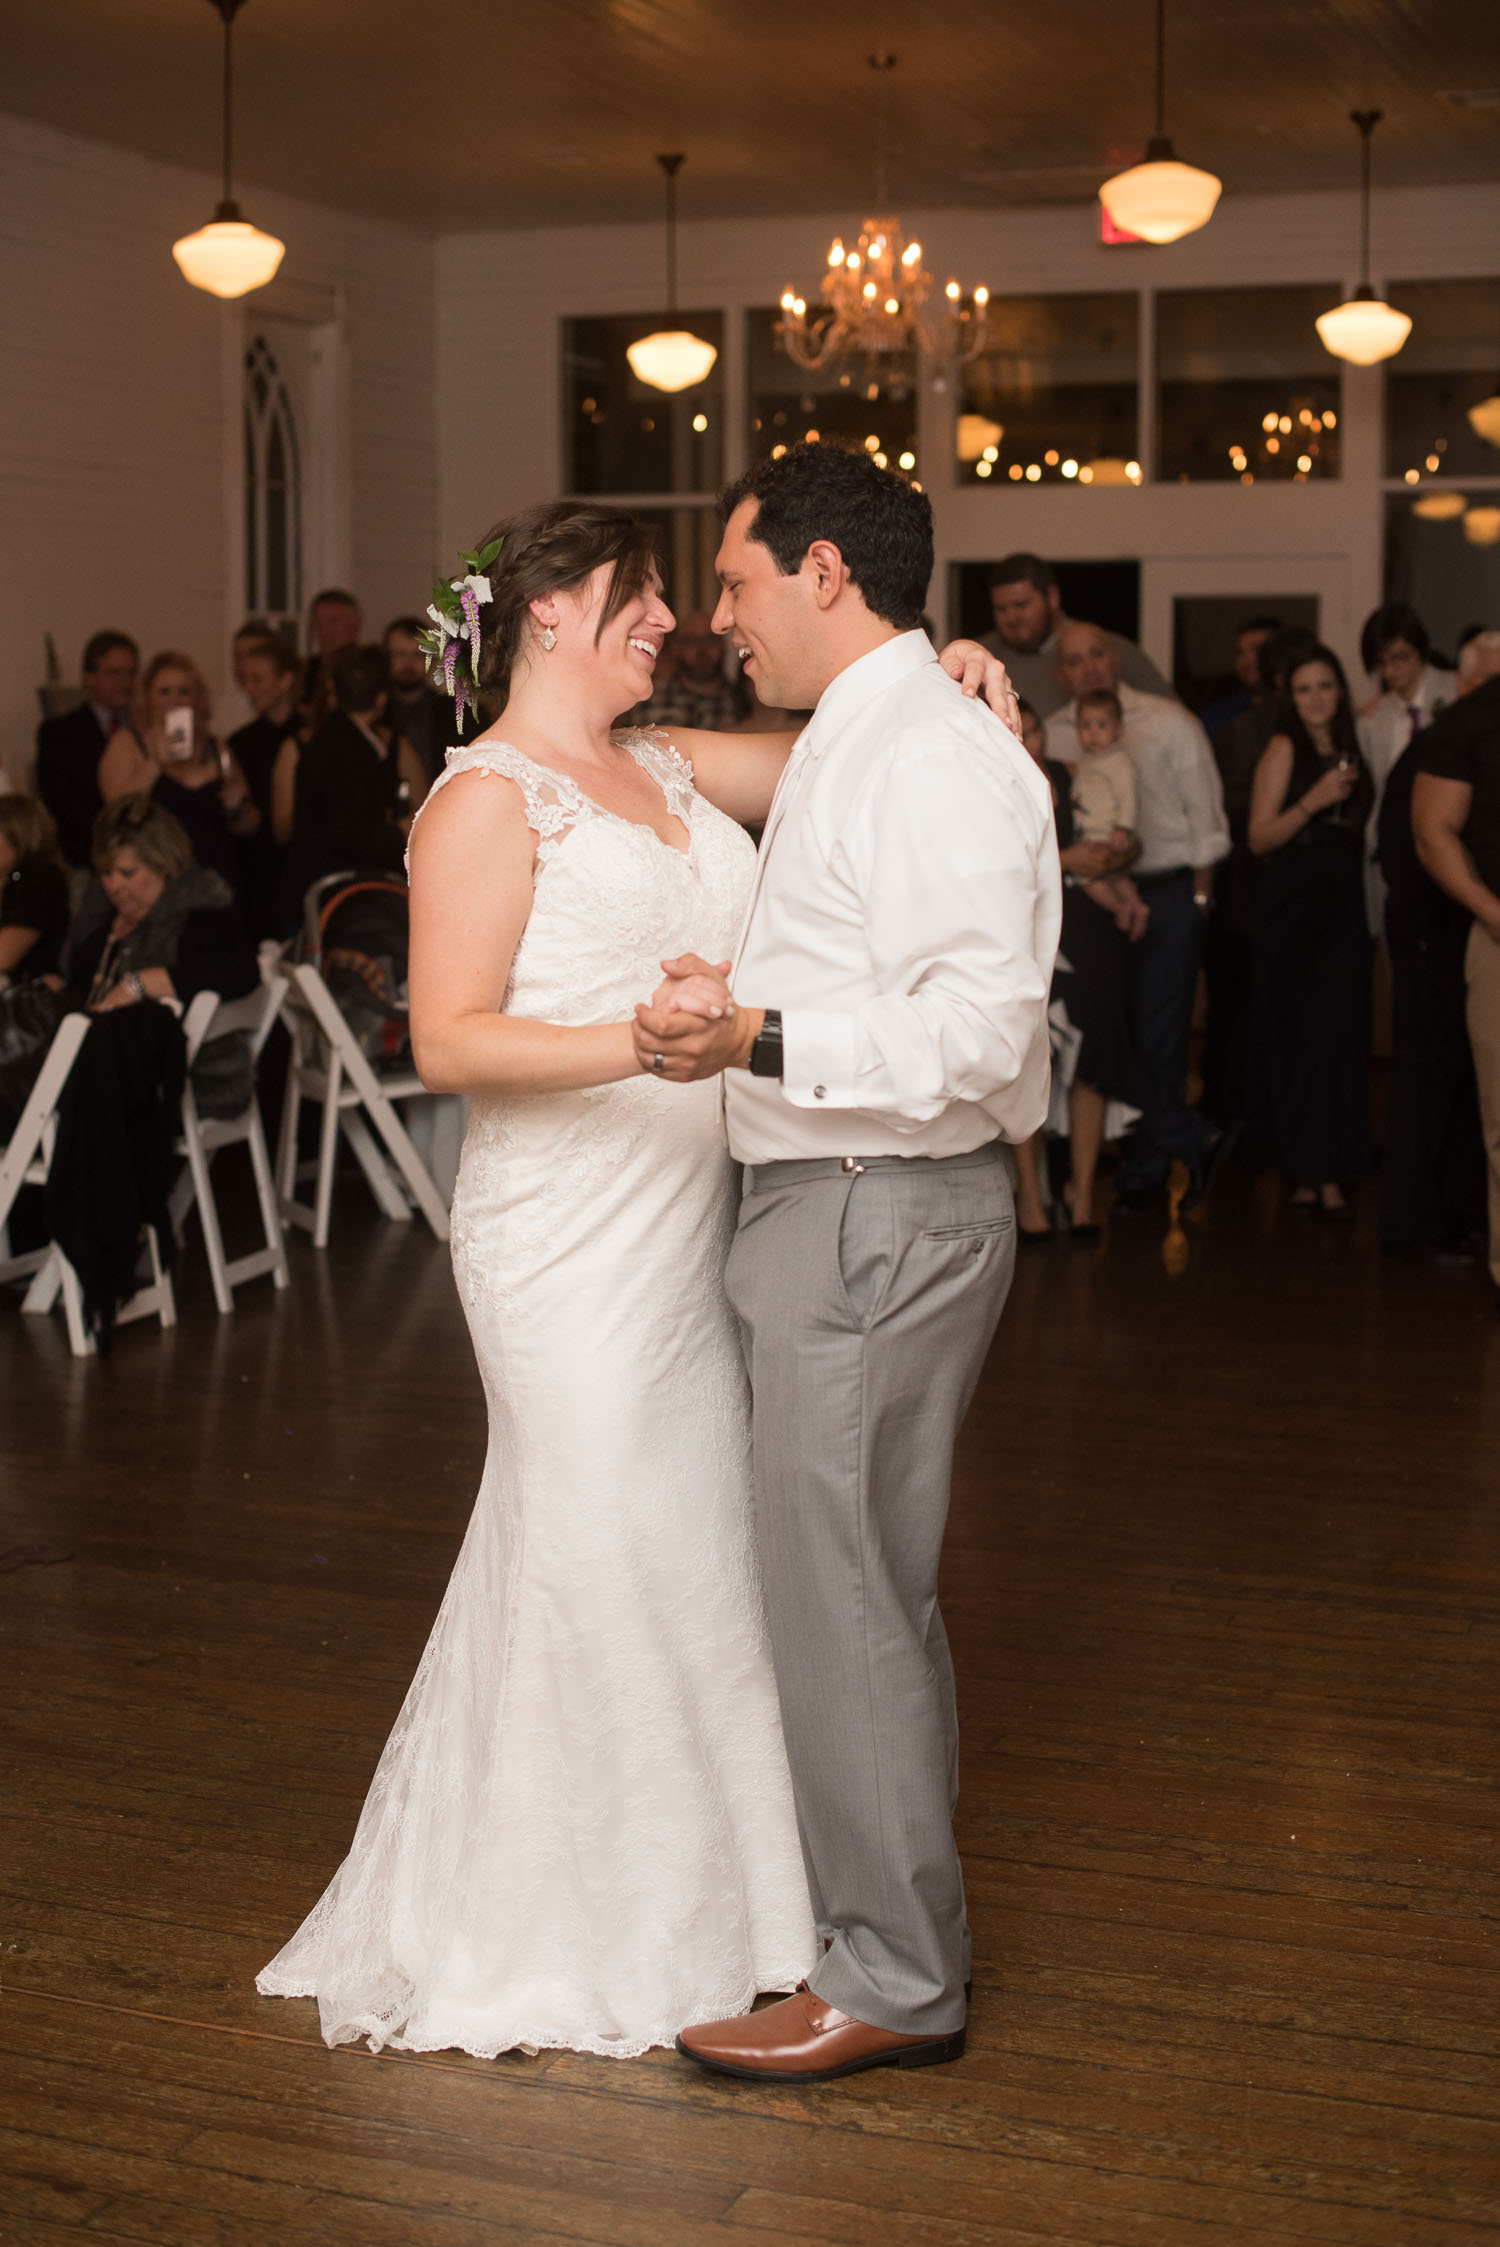 Alex and Austin Wedding Photography at Mercury Hall in Texas-148.jpg